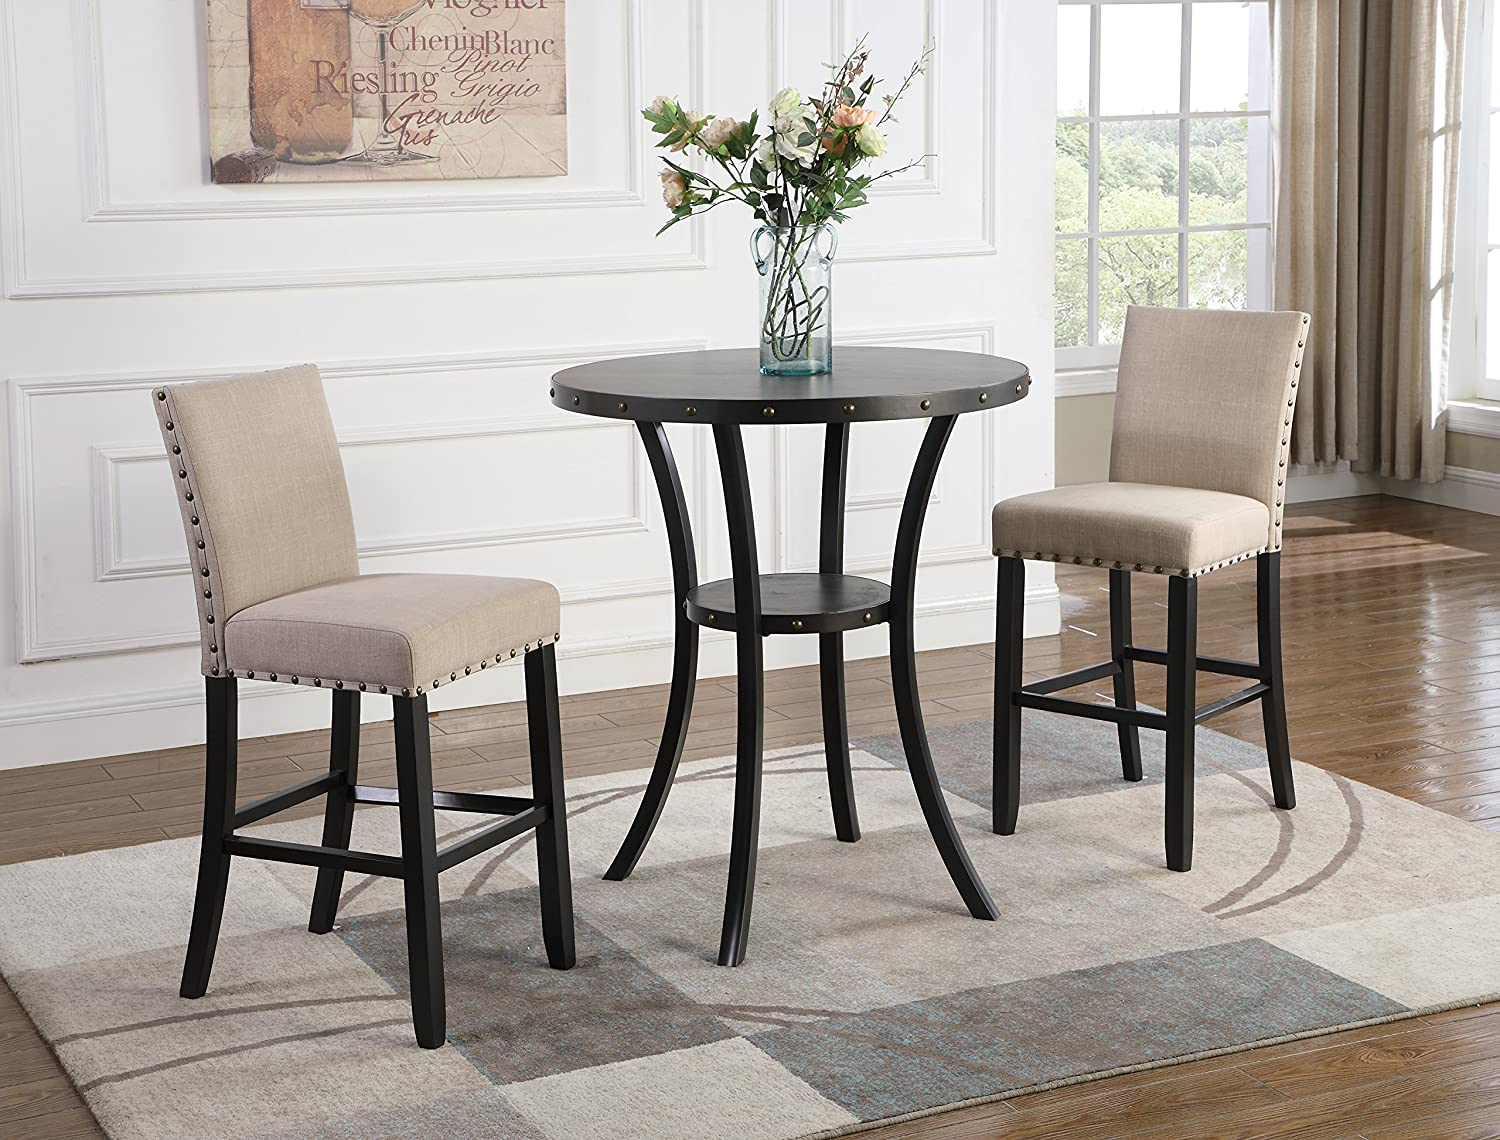 """Roundhill Furniture Biony 3-Piece 36"""" Round Espresso Bar Table with Nail Head Stools, Tan"""